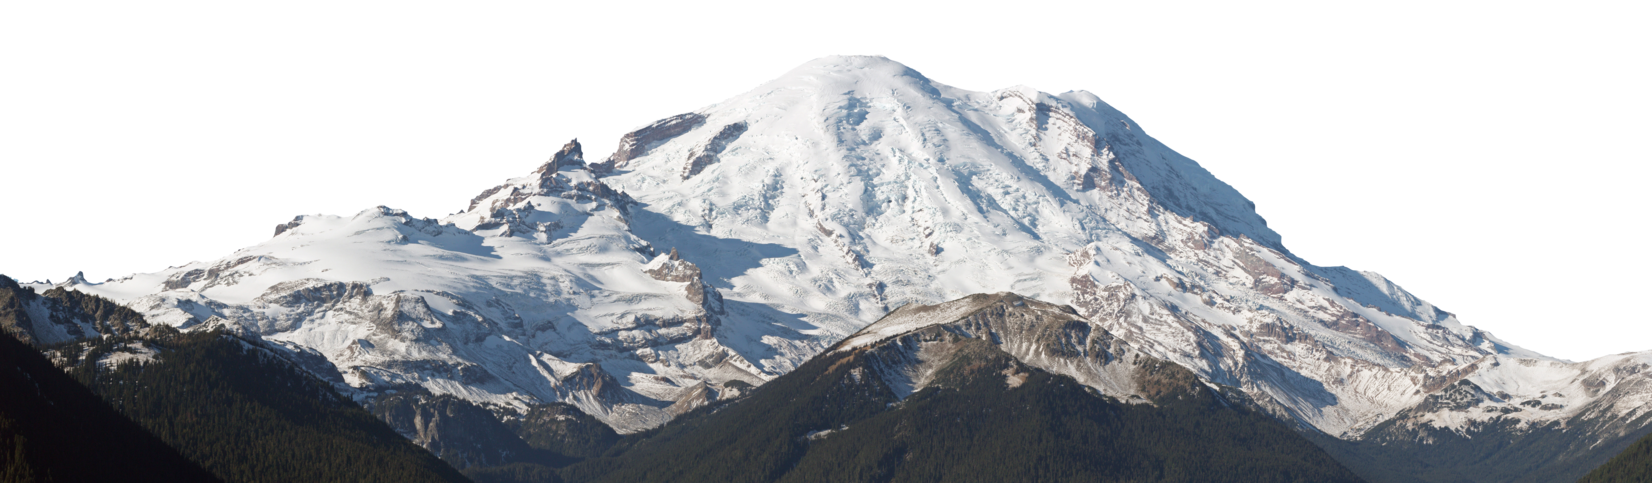 snowy mountain png absurdwordpreferred deviantart #11789